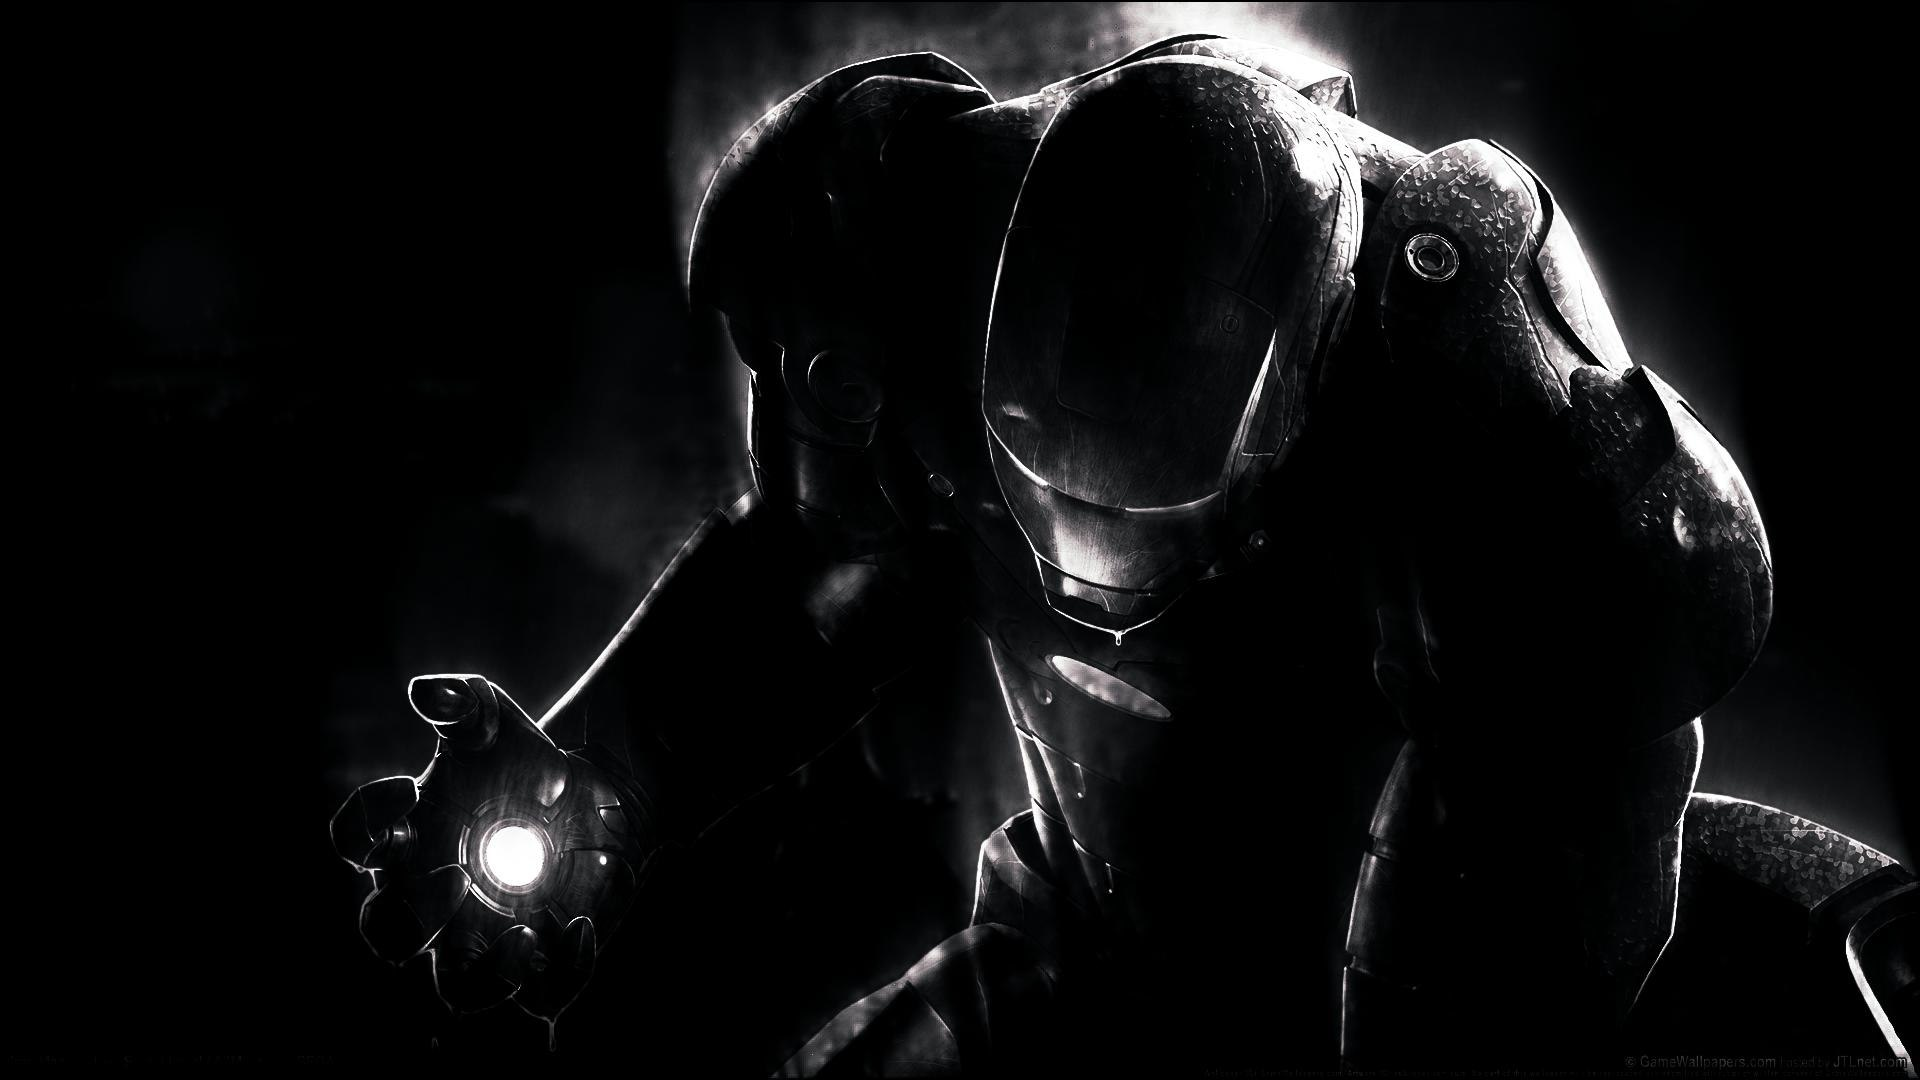 Iron Man Heroes Wallpaper HD 1920X1080